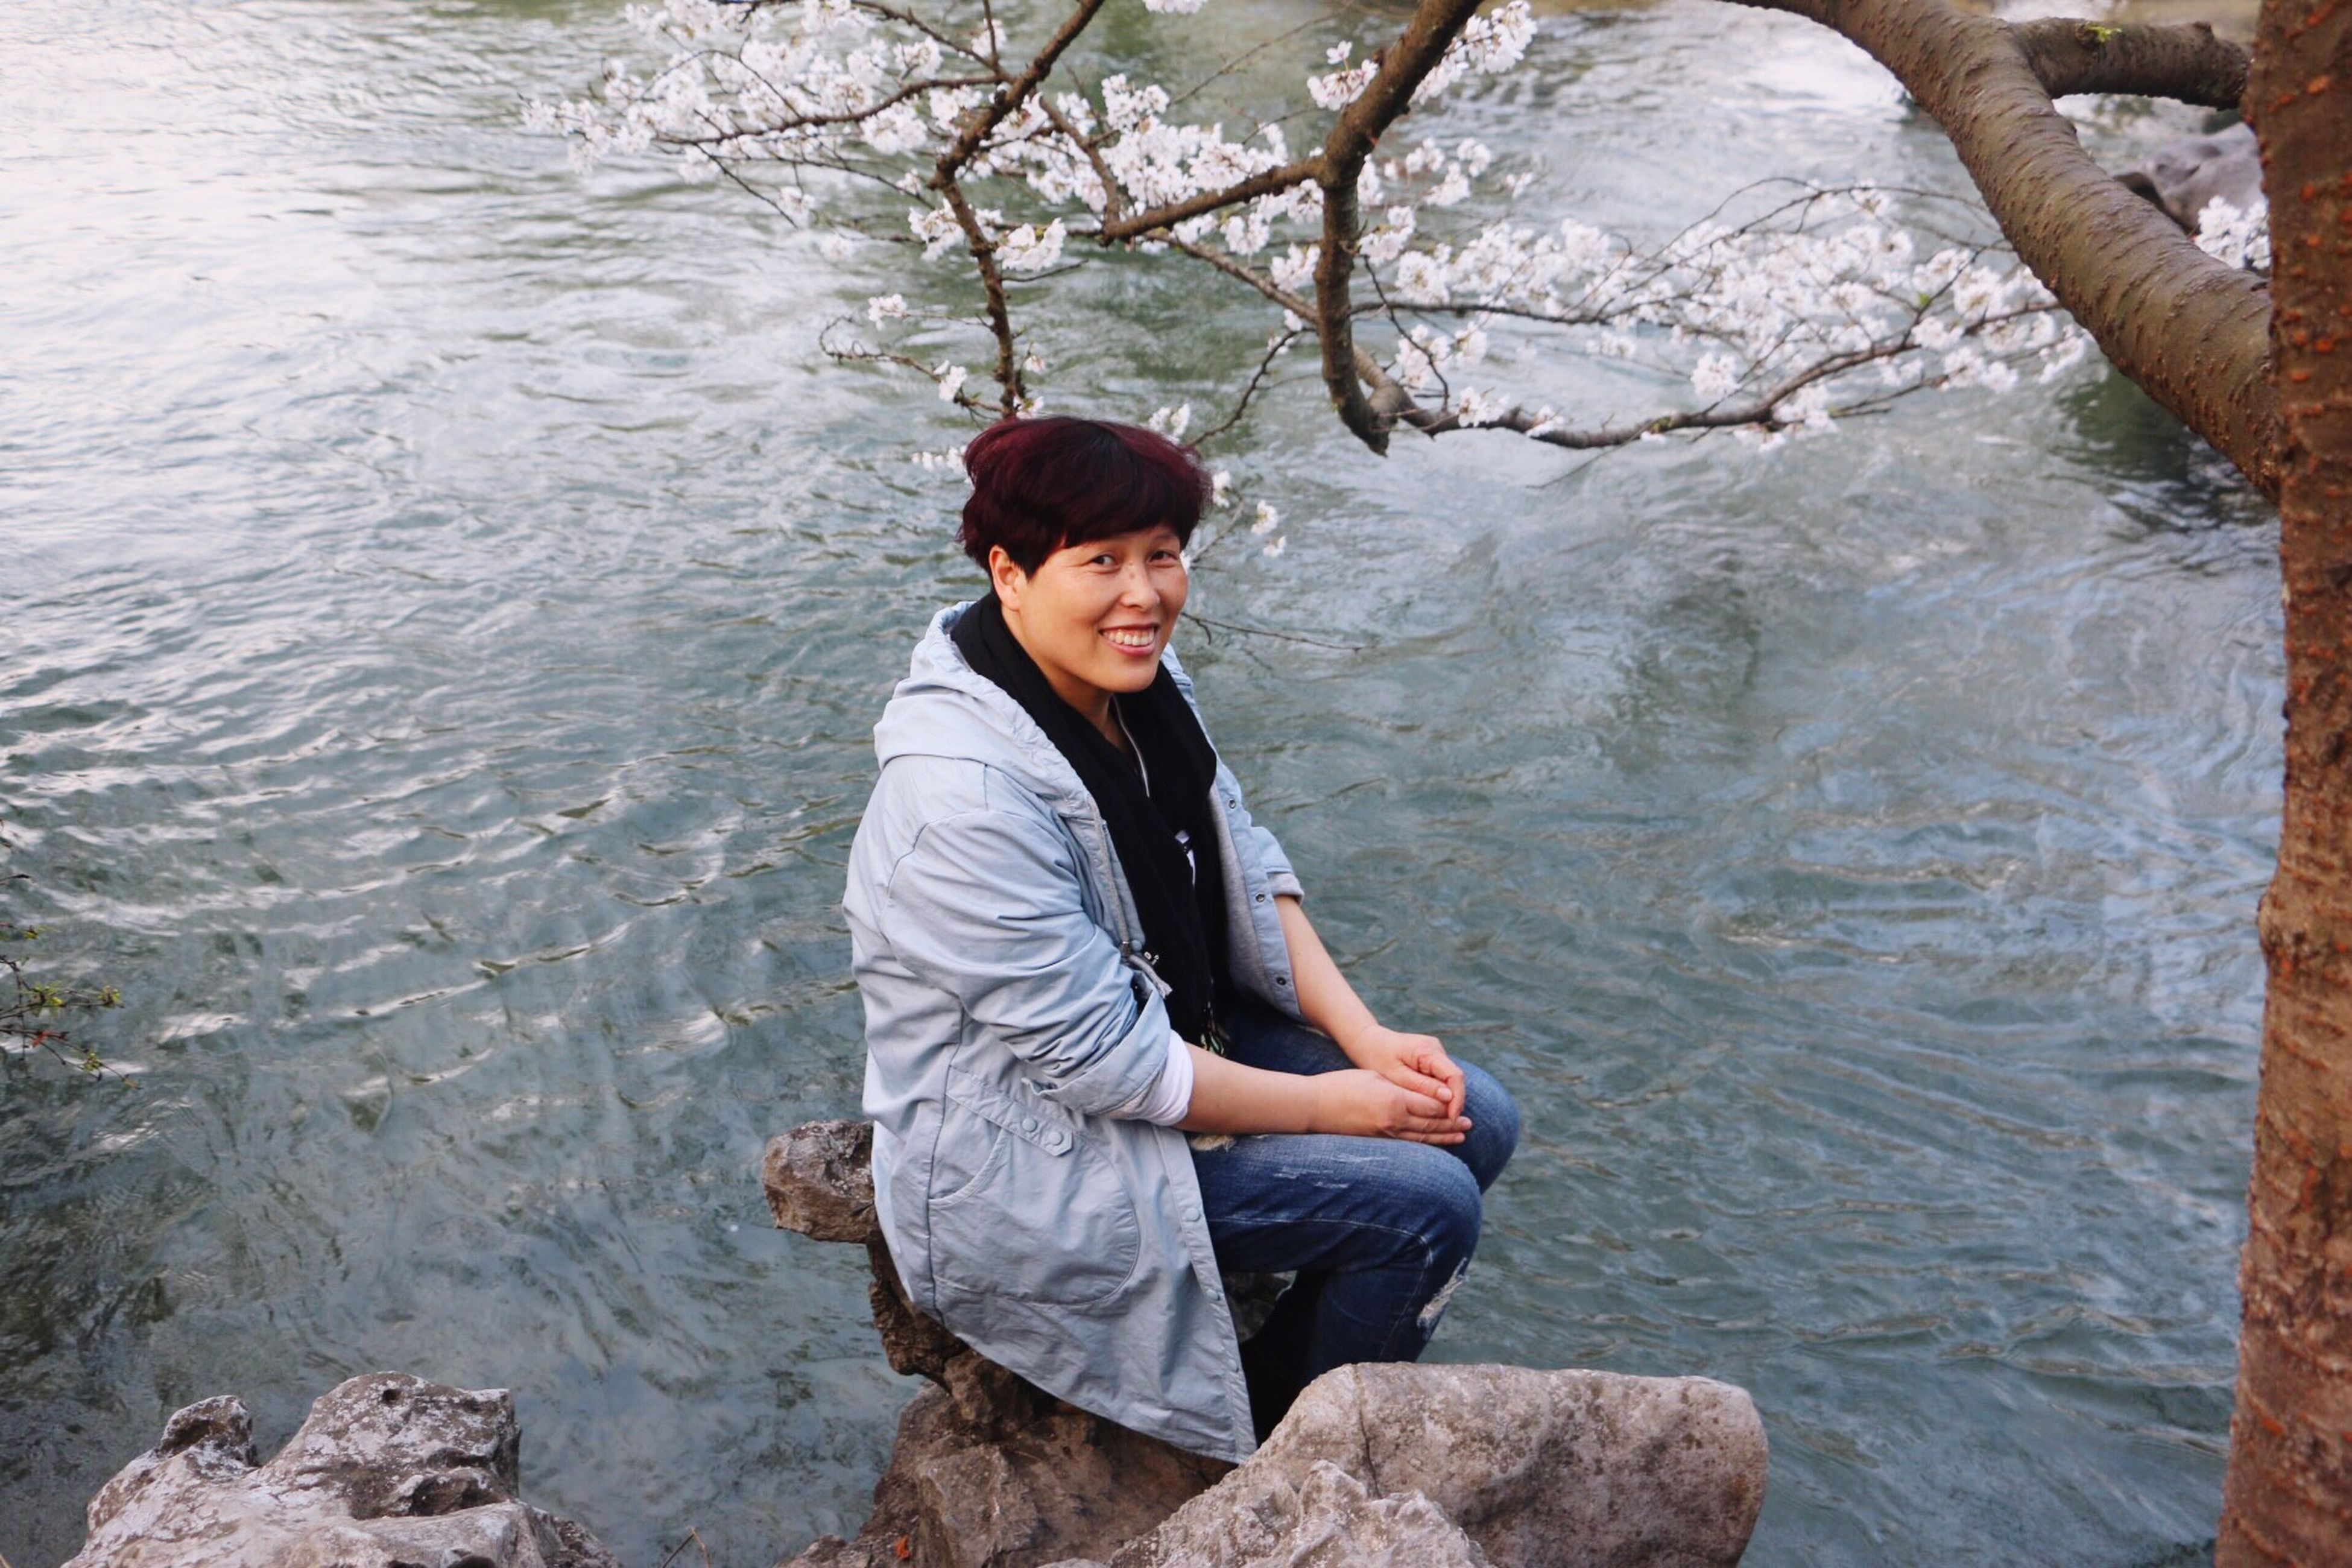 water, lifestyles, leisure activity, casual clothing, young adult, person, young men, full length, lake, standing, three quarter length, river, nature, sitting, rock - object, tree, portrait, vacations